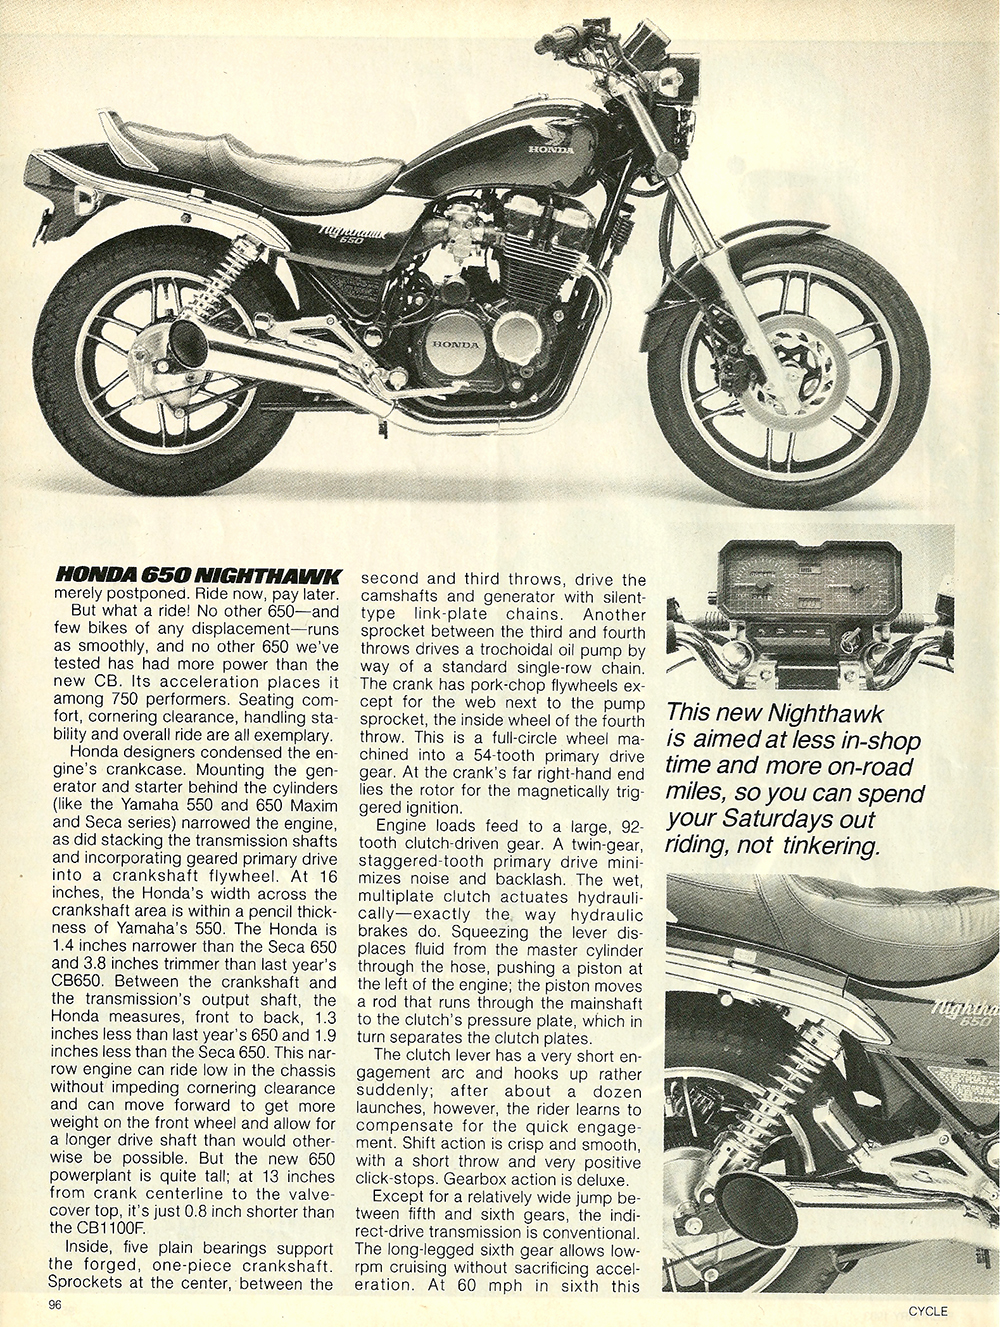 1983 Honda CB650SC Nighthawk road test 3.jpg